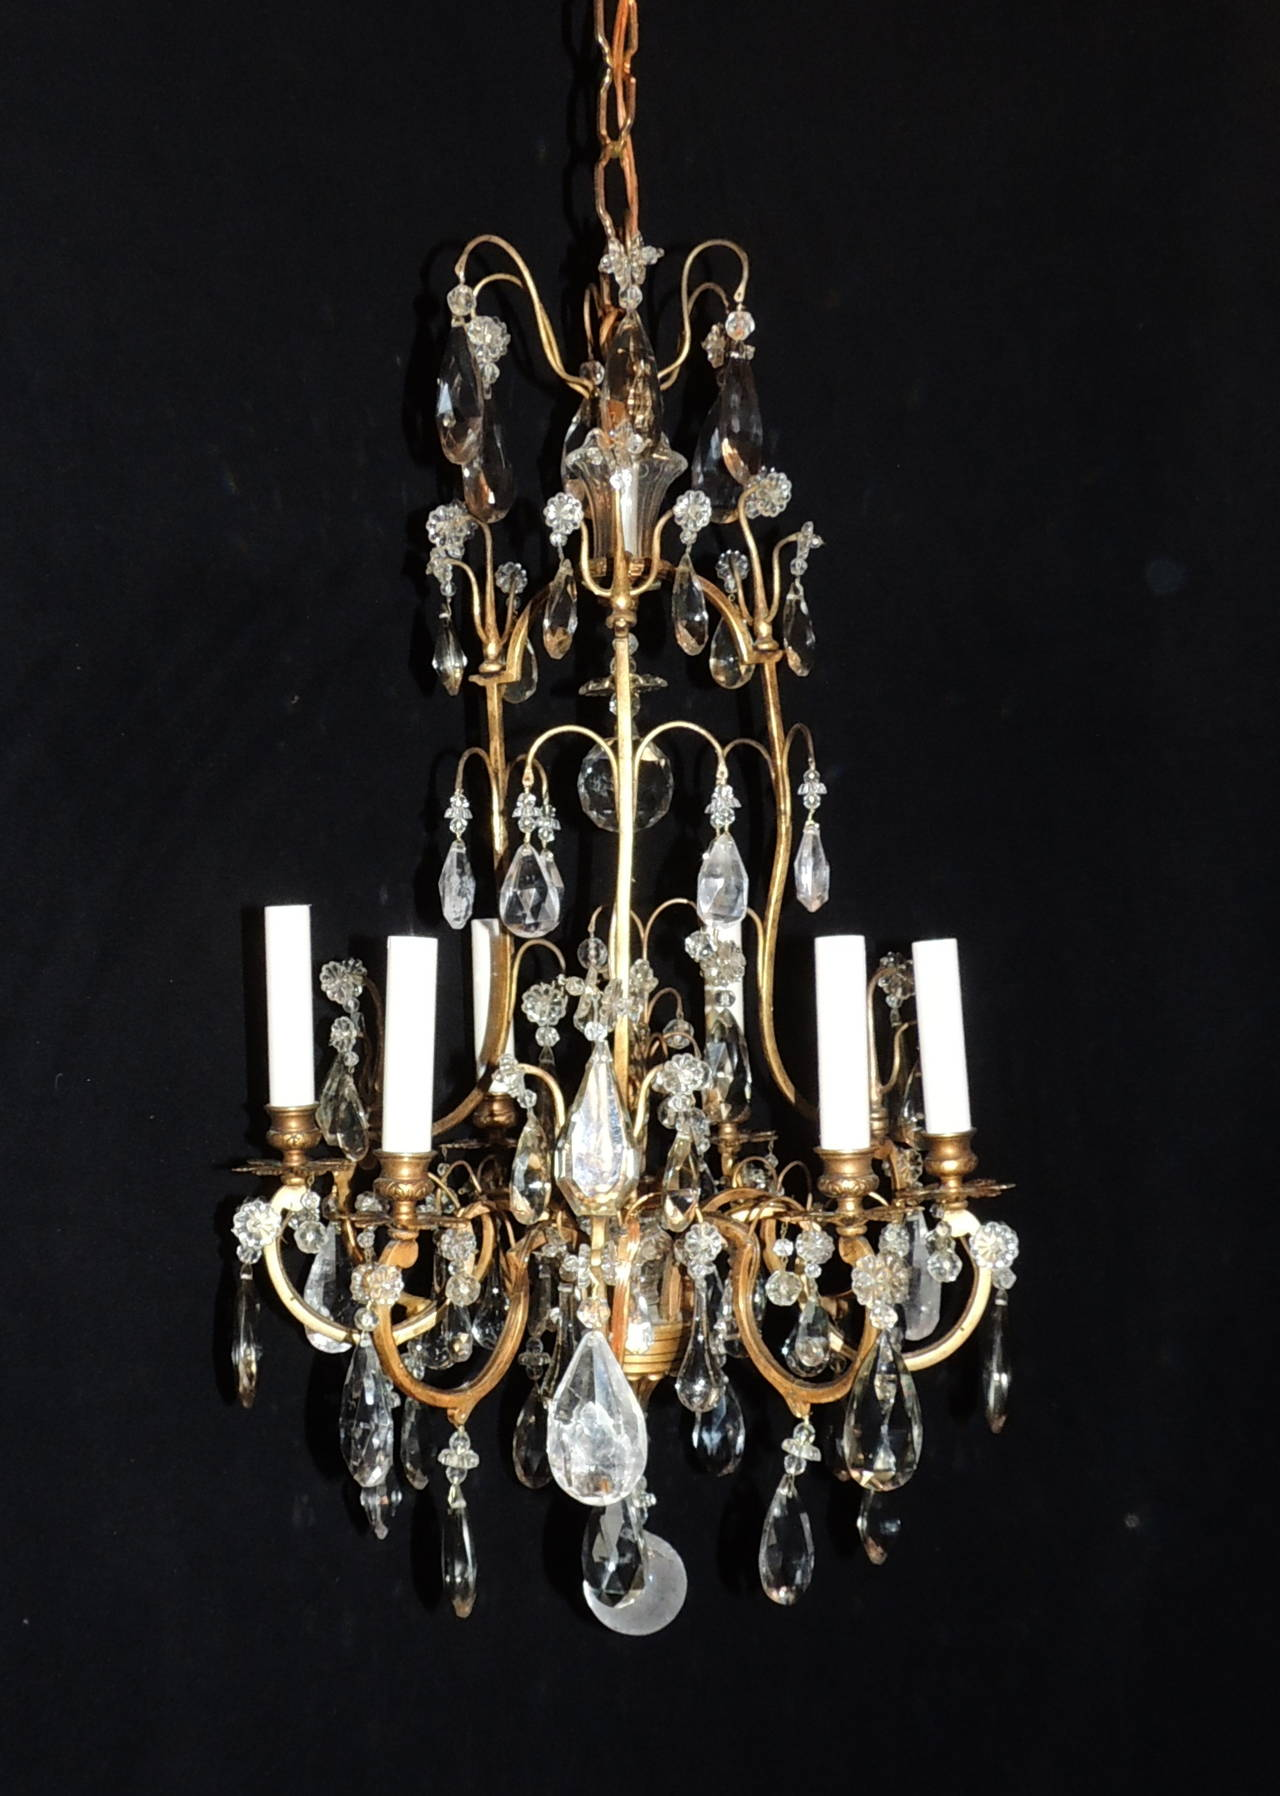 Elegant french dor bronze and rock crystal vintage six light bagues an elegant dore bronze amp rock crystal chandelier topped with a crown of crystal mozeypictures Image collections